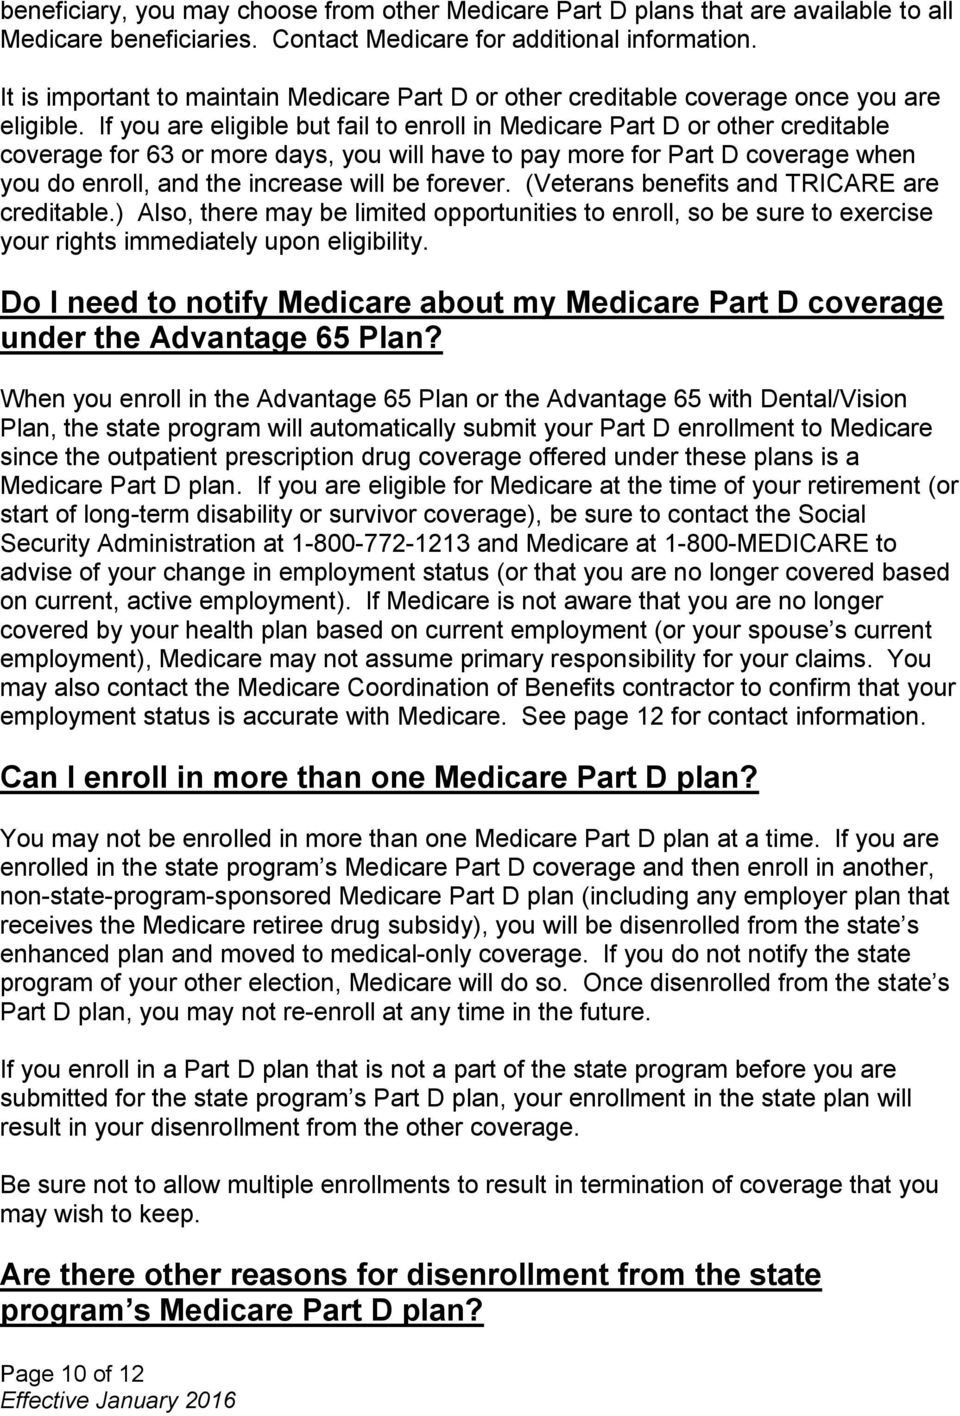 If you are eligible but fail to enroll in Medicare Part D or other creditable coverage for 63 or more days, you will have to pay more for Part D coverage when you do enroll, and the increase will be